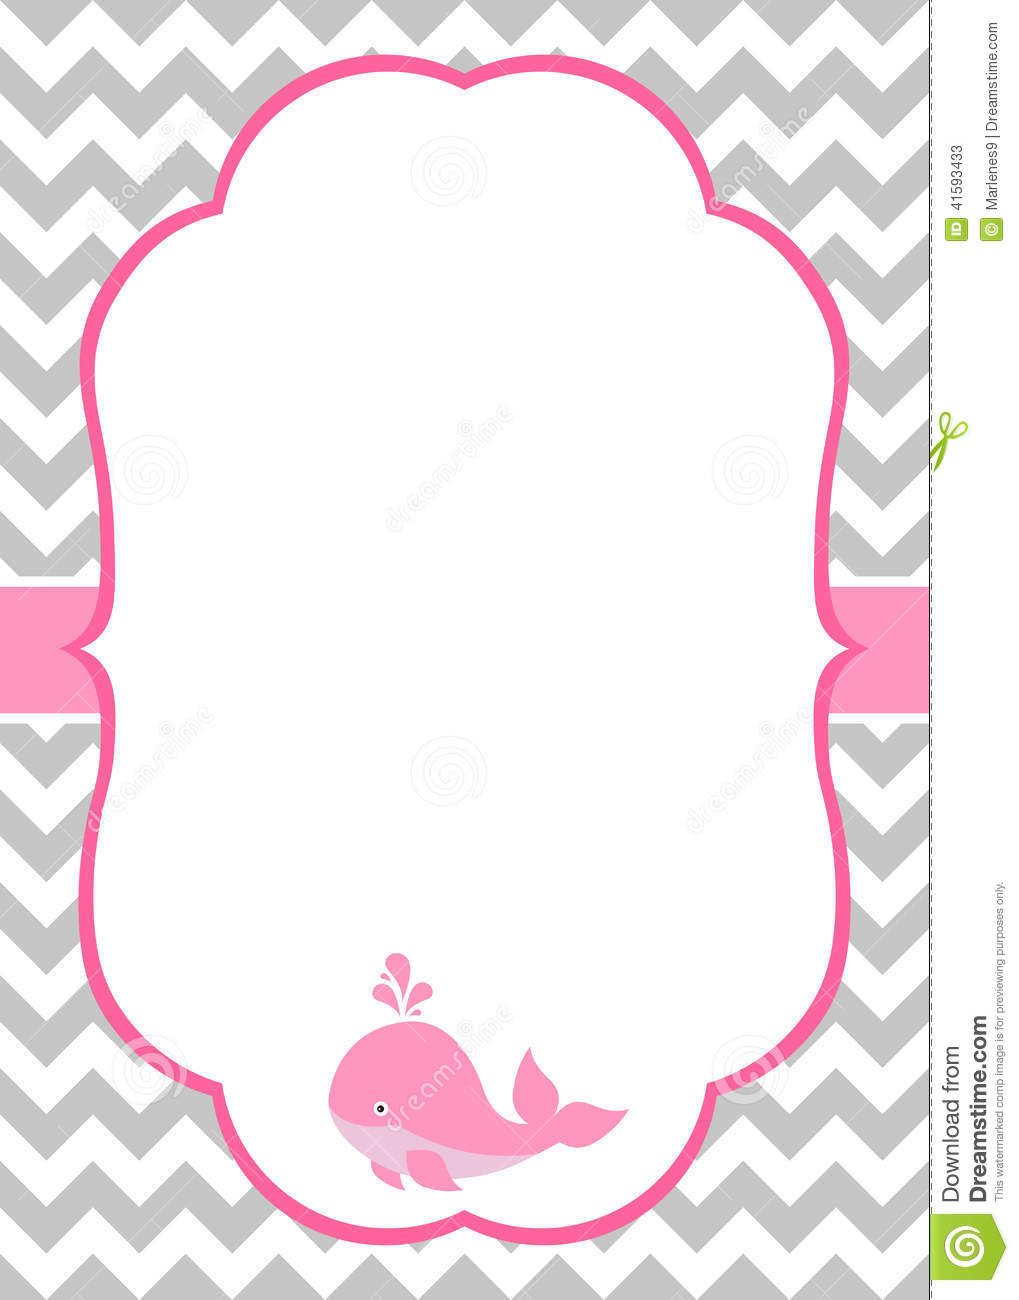 Baby Girl Invitation Card Stock Vector - Image: 41593433